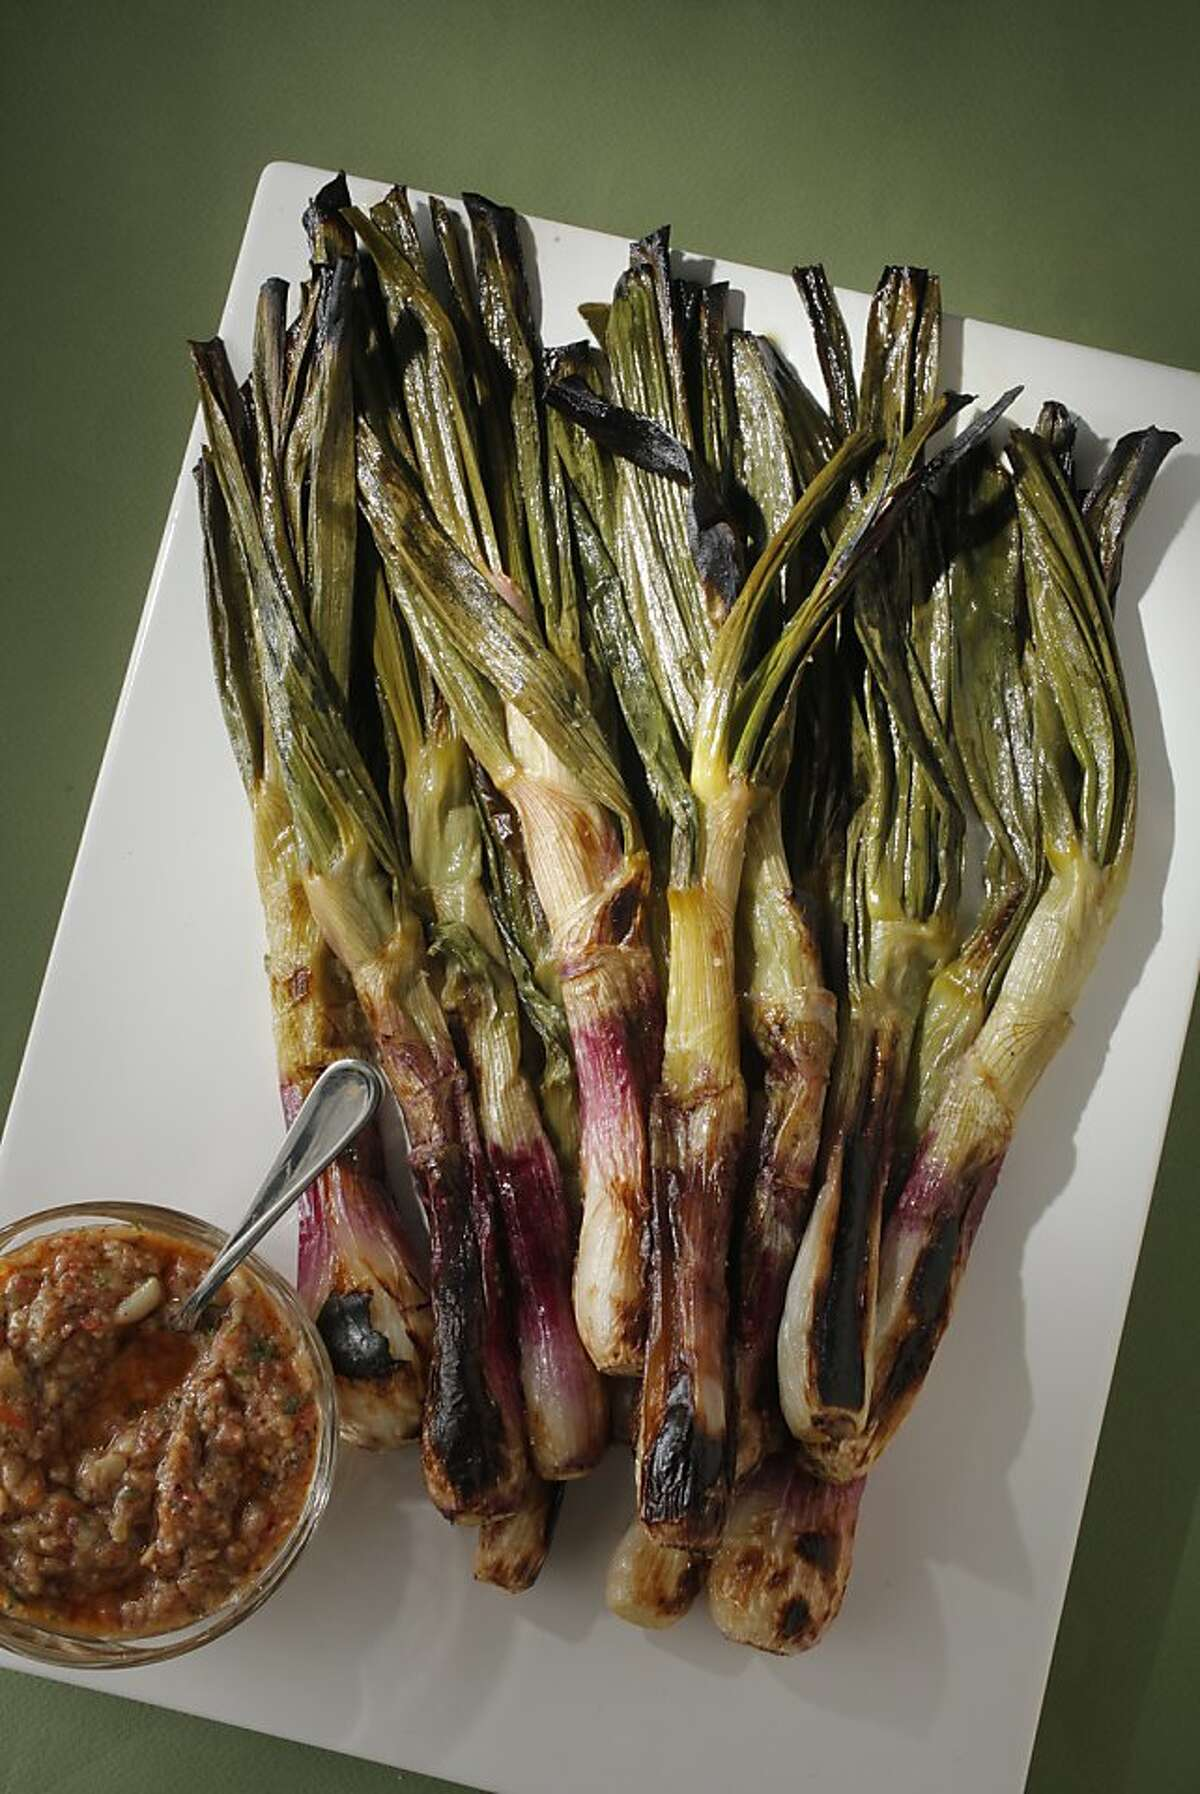 Little Grilled Calçot Onions with Salvitjada as seen in San Francisco on April 11, 2012. Food styled by Stephanie Kirkland.